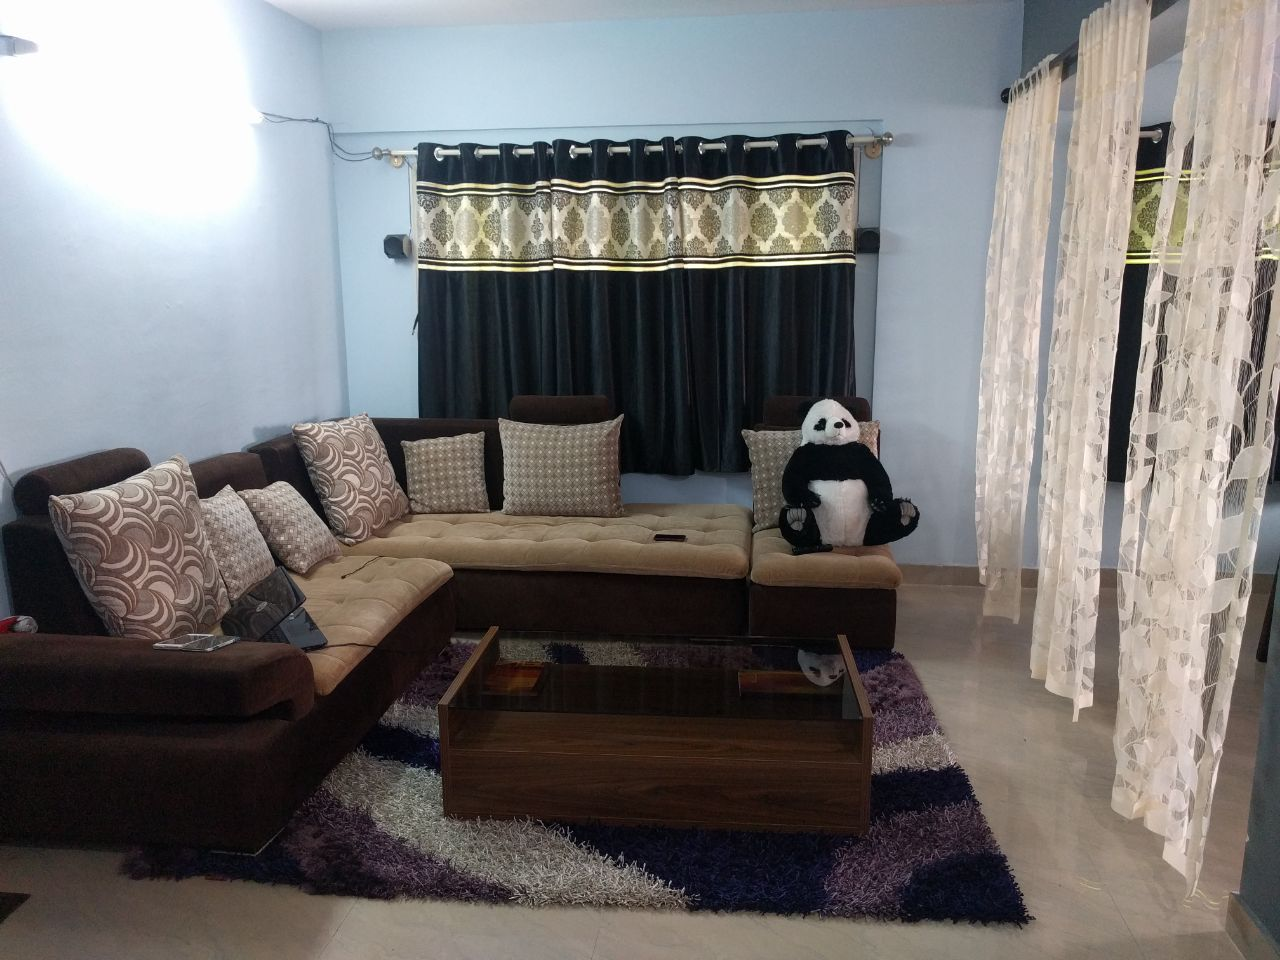 2 BHK FULLY FURNISHED FLAT FOR RENT  @ KORAMANGALA  4th BLOCK ST BED NR MANTRI CLASSIC